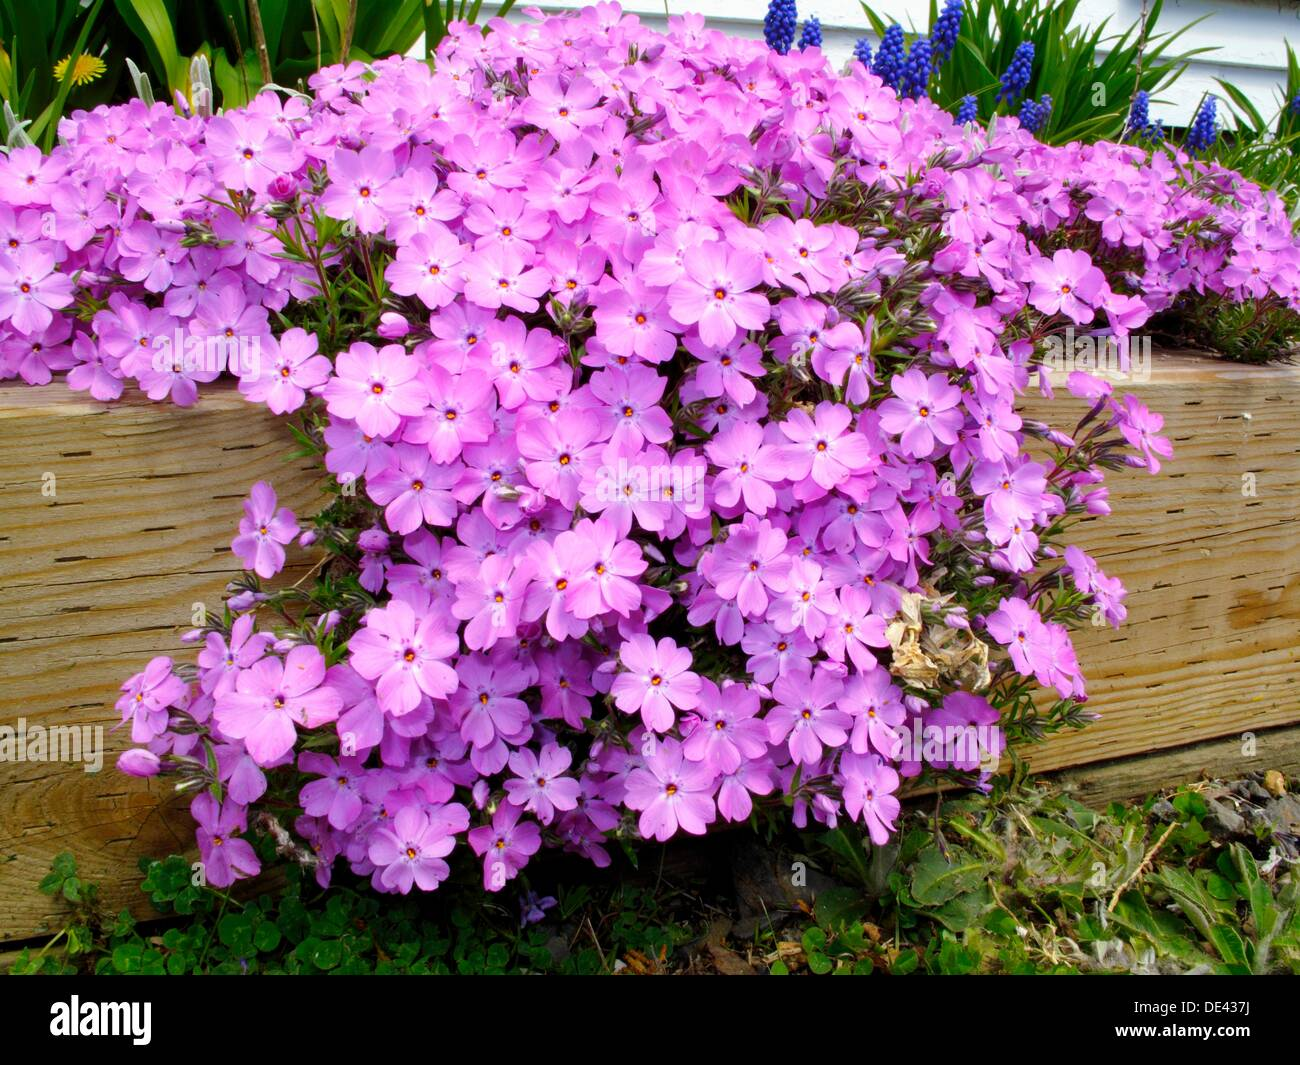 phlox flower flox stock photos phlox flower flox stock images alamy. Black Bedroom Furniture Sets. Home Design Ideas